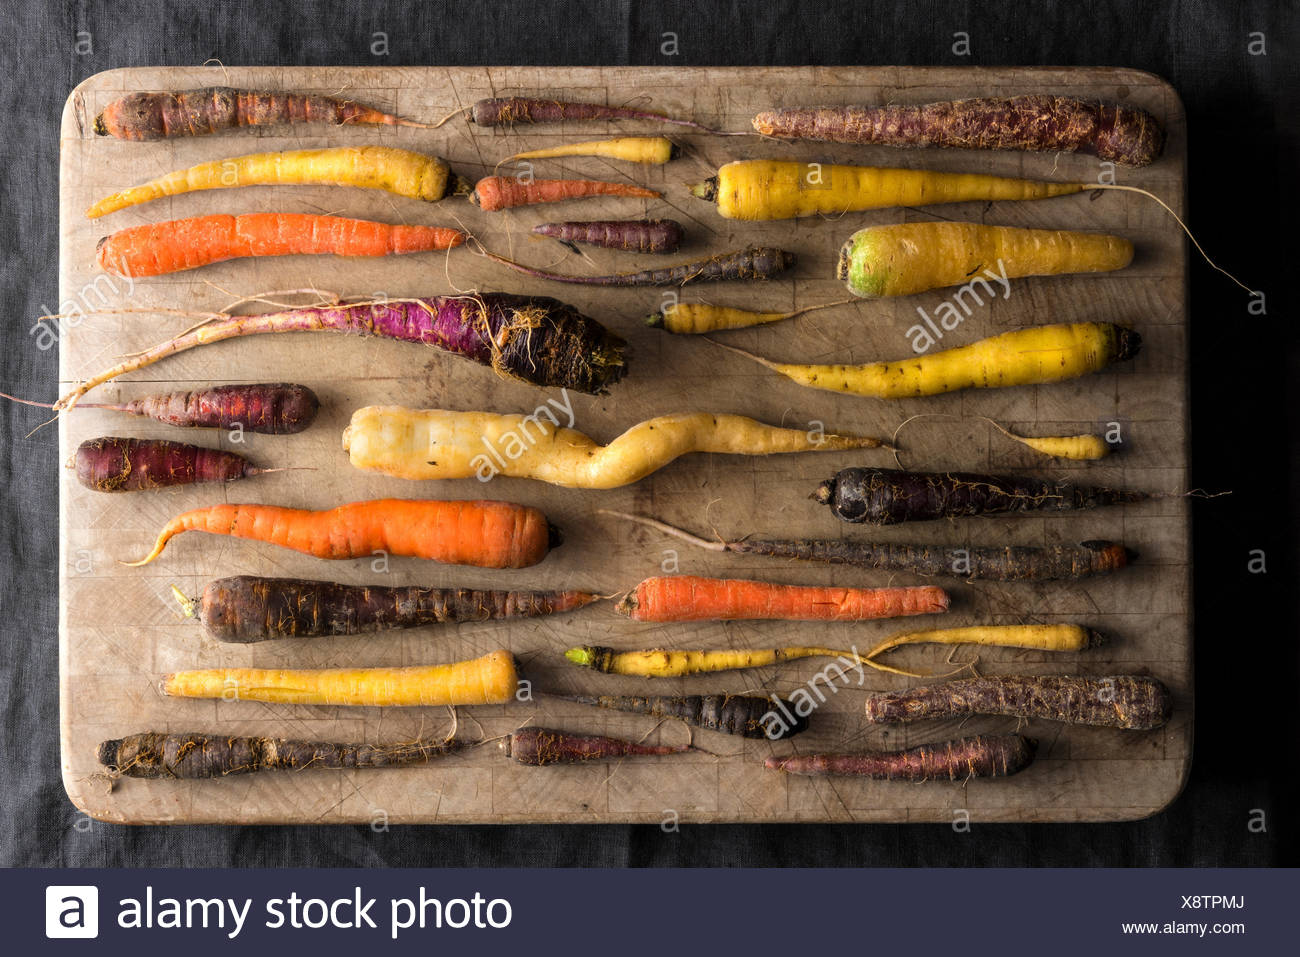 An overhead shot of an array of rainbow carrots in many colors and shapes all with a fresh from the farm, rustic look. - Stock Image